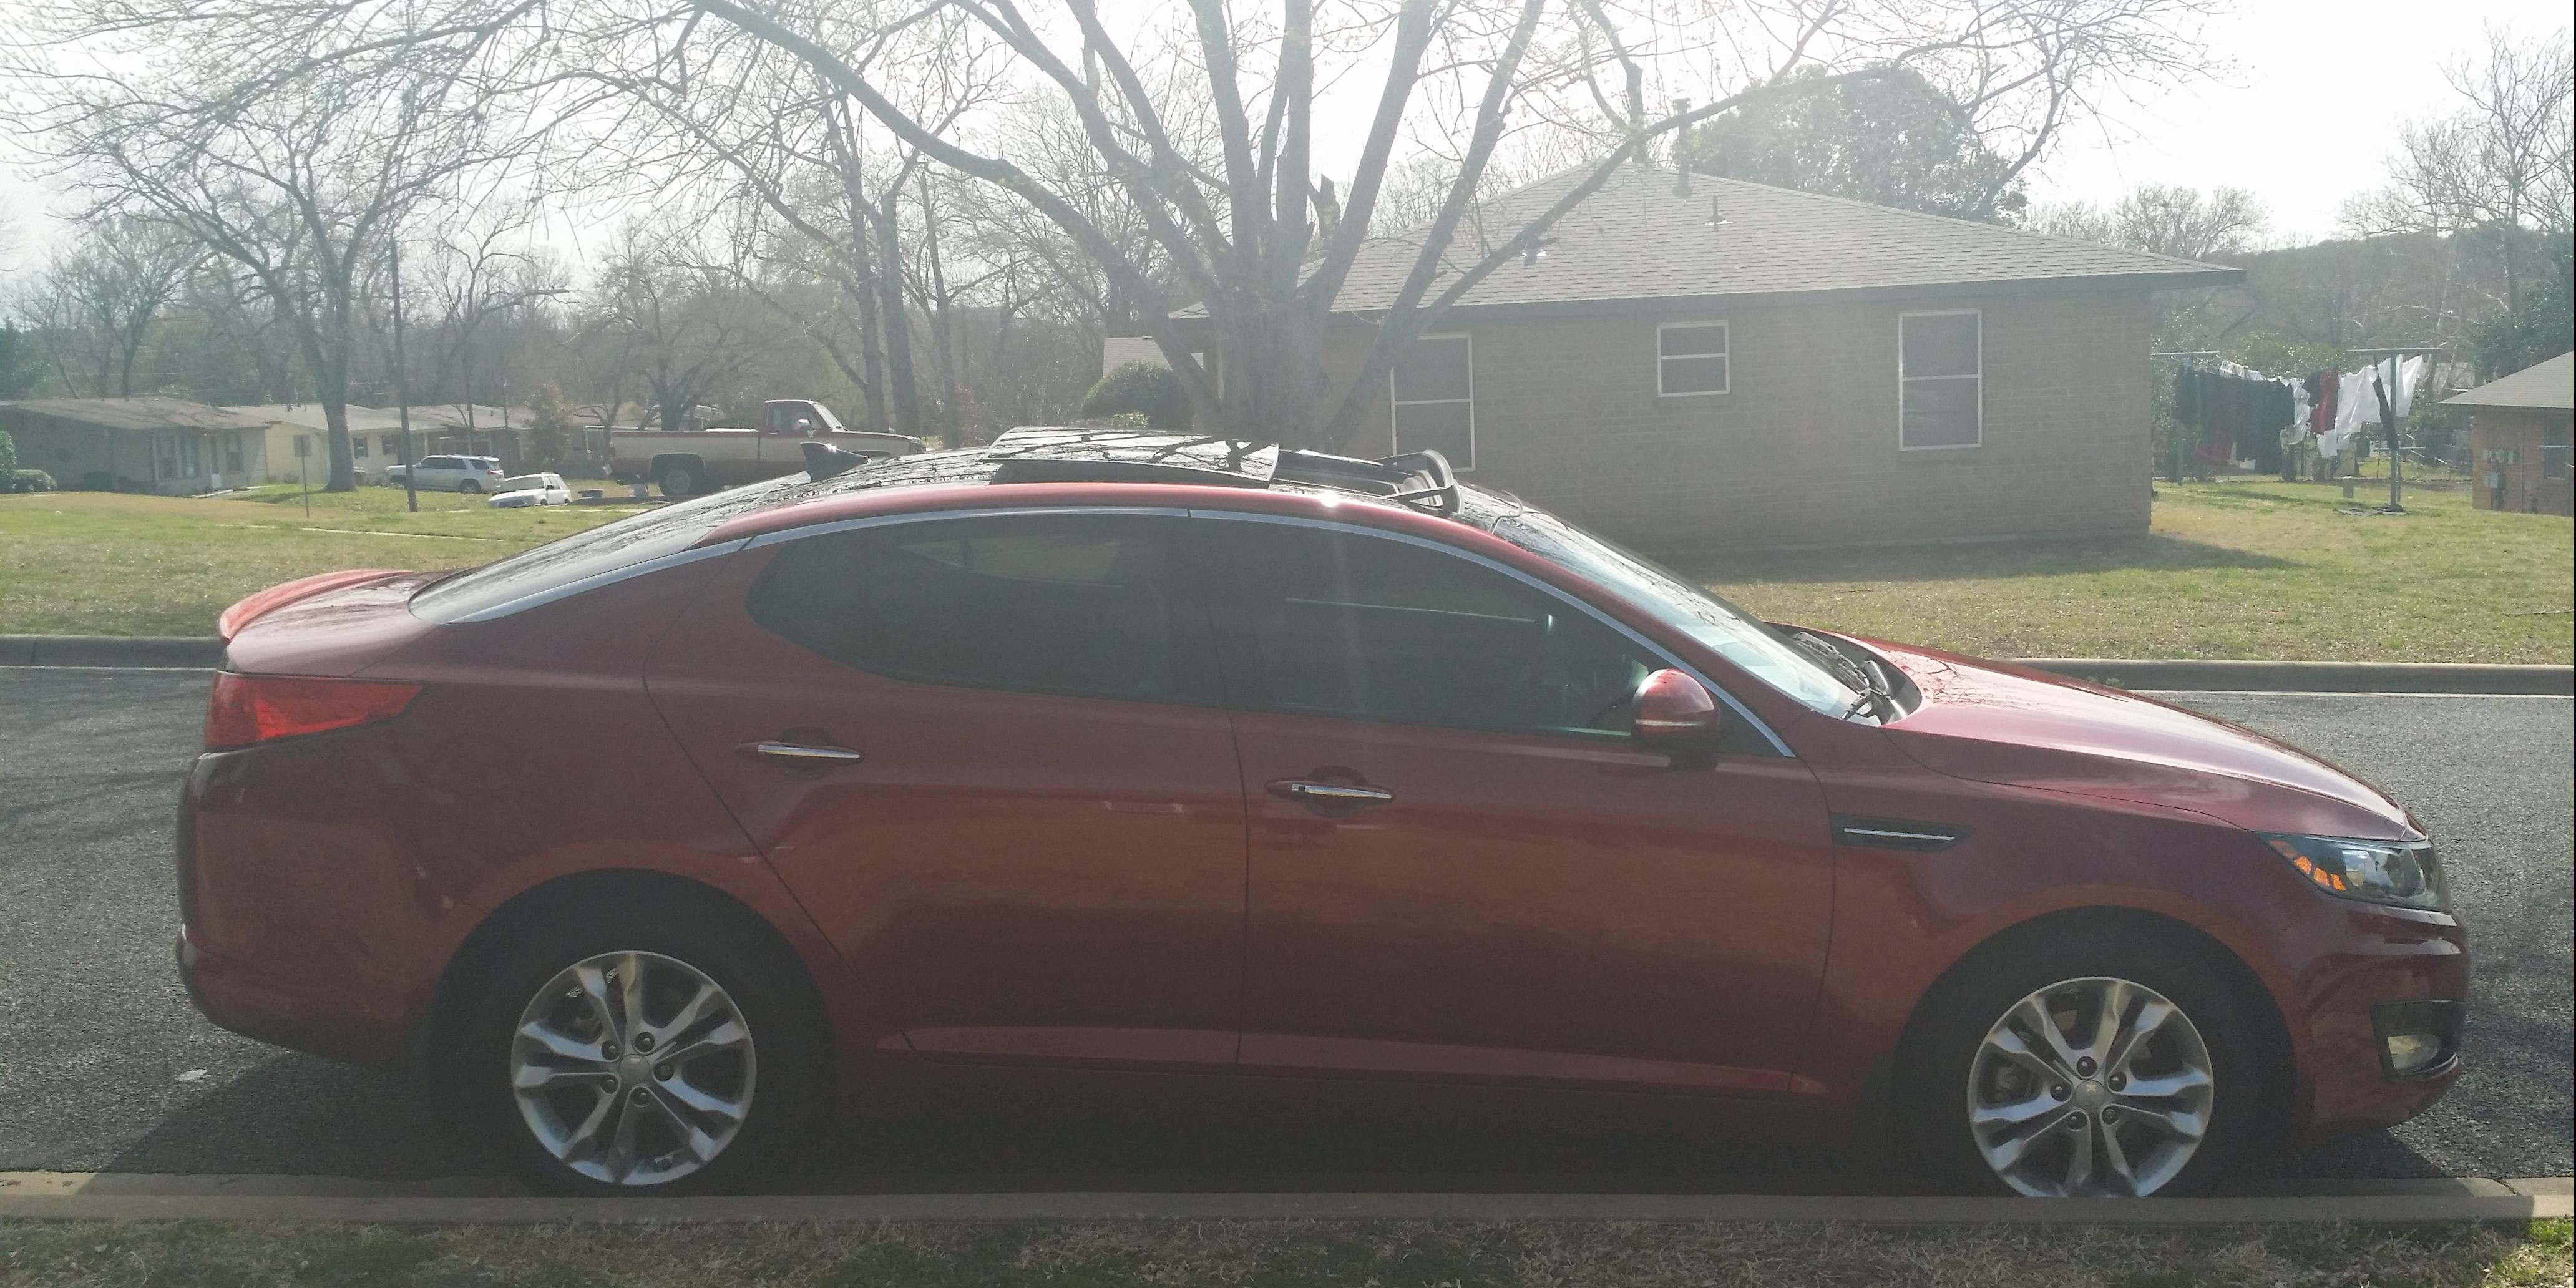 atxmade02's 2013 Kia Optima